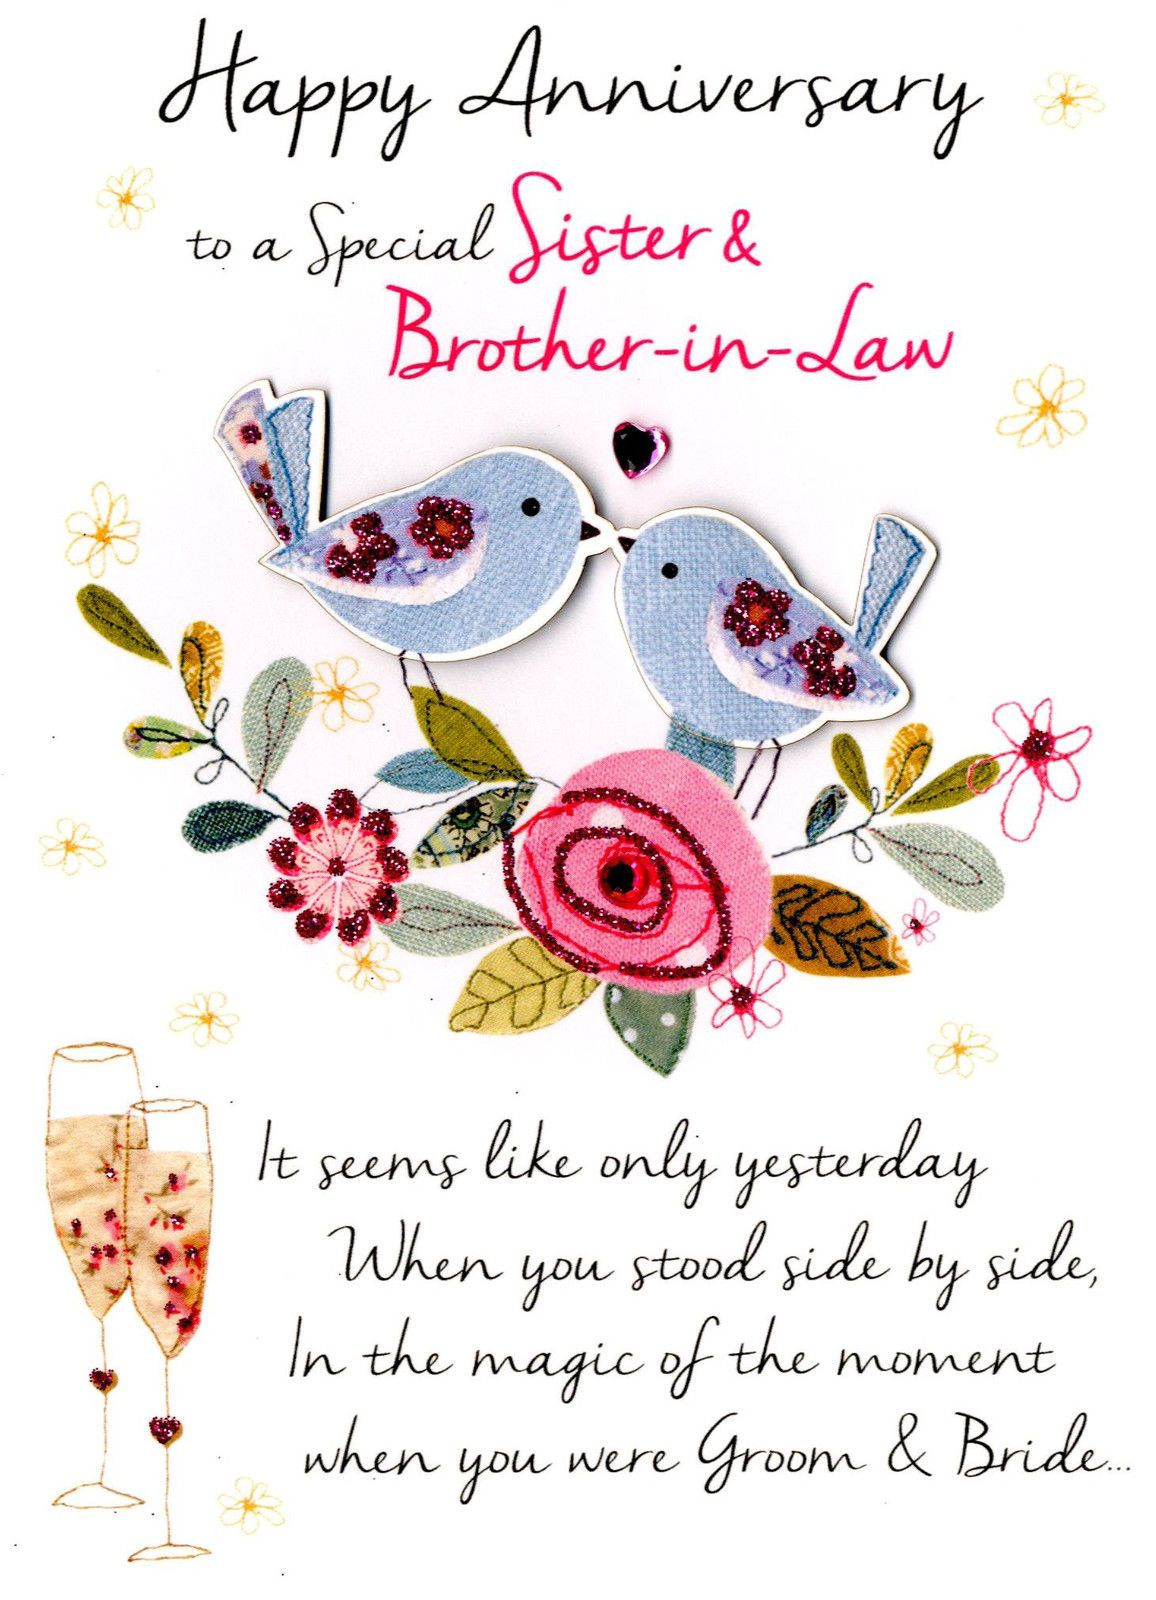 2 99 Gbp Sister Brother In Law Anniversary Greeting Card Second Anniversary Wishes For Sister Wedding Anniversary Wishes Happy Wedding Anniversary Wishes